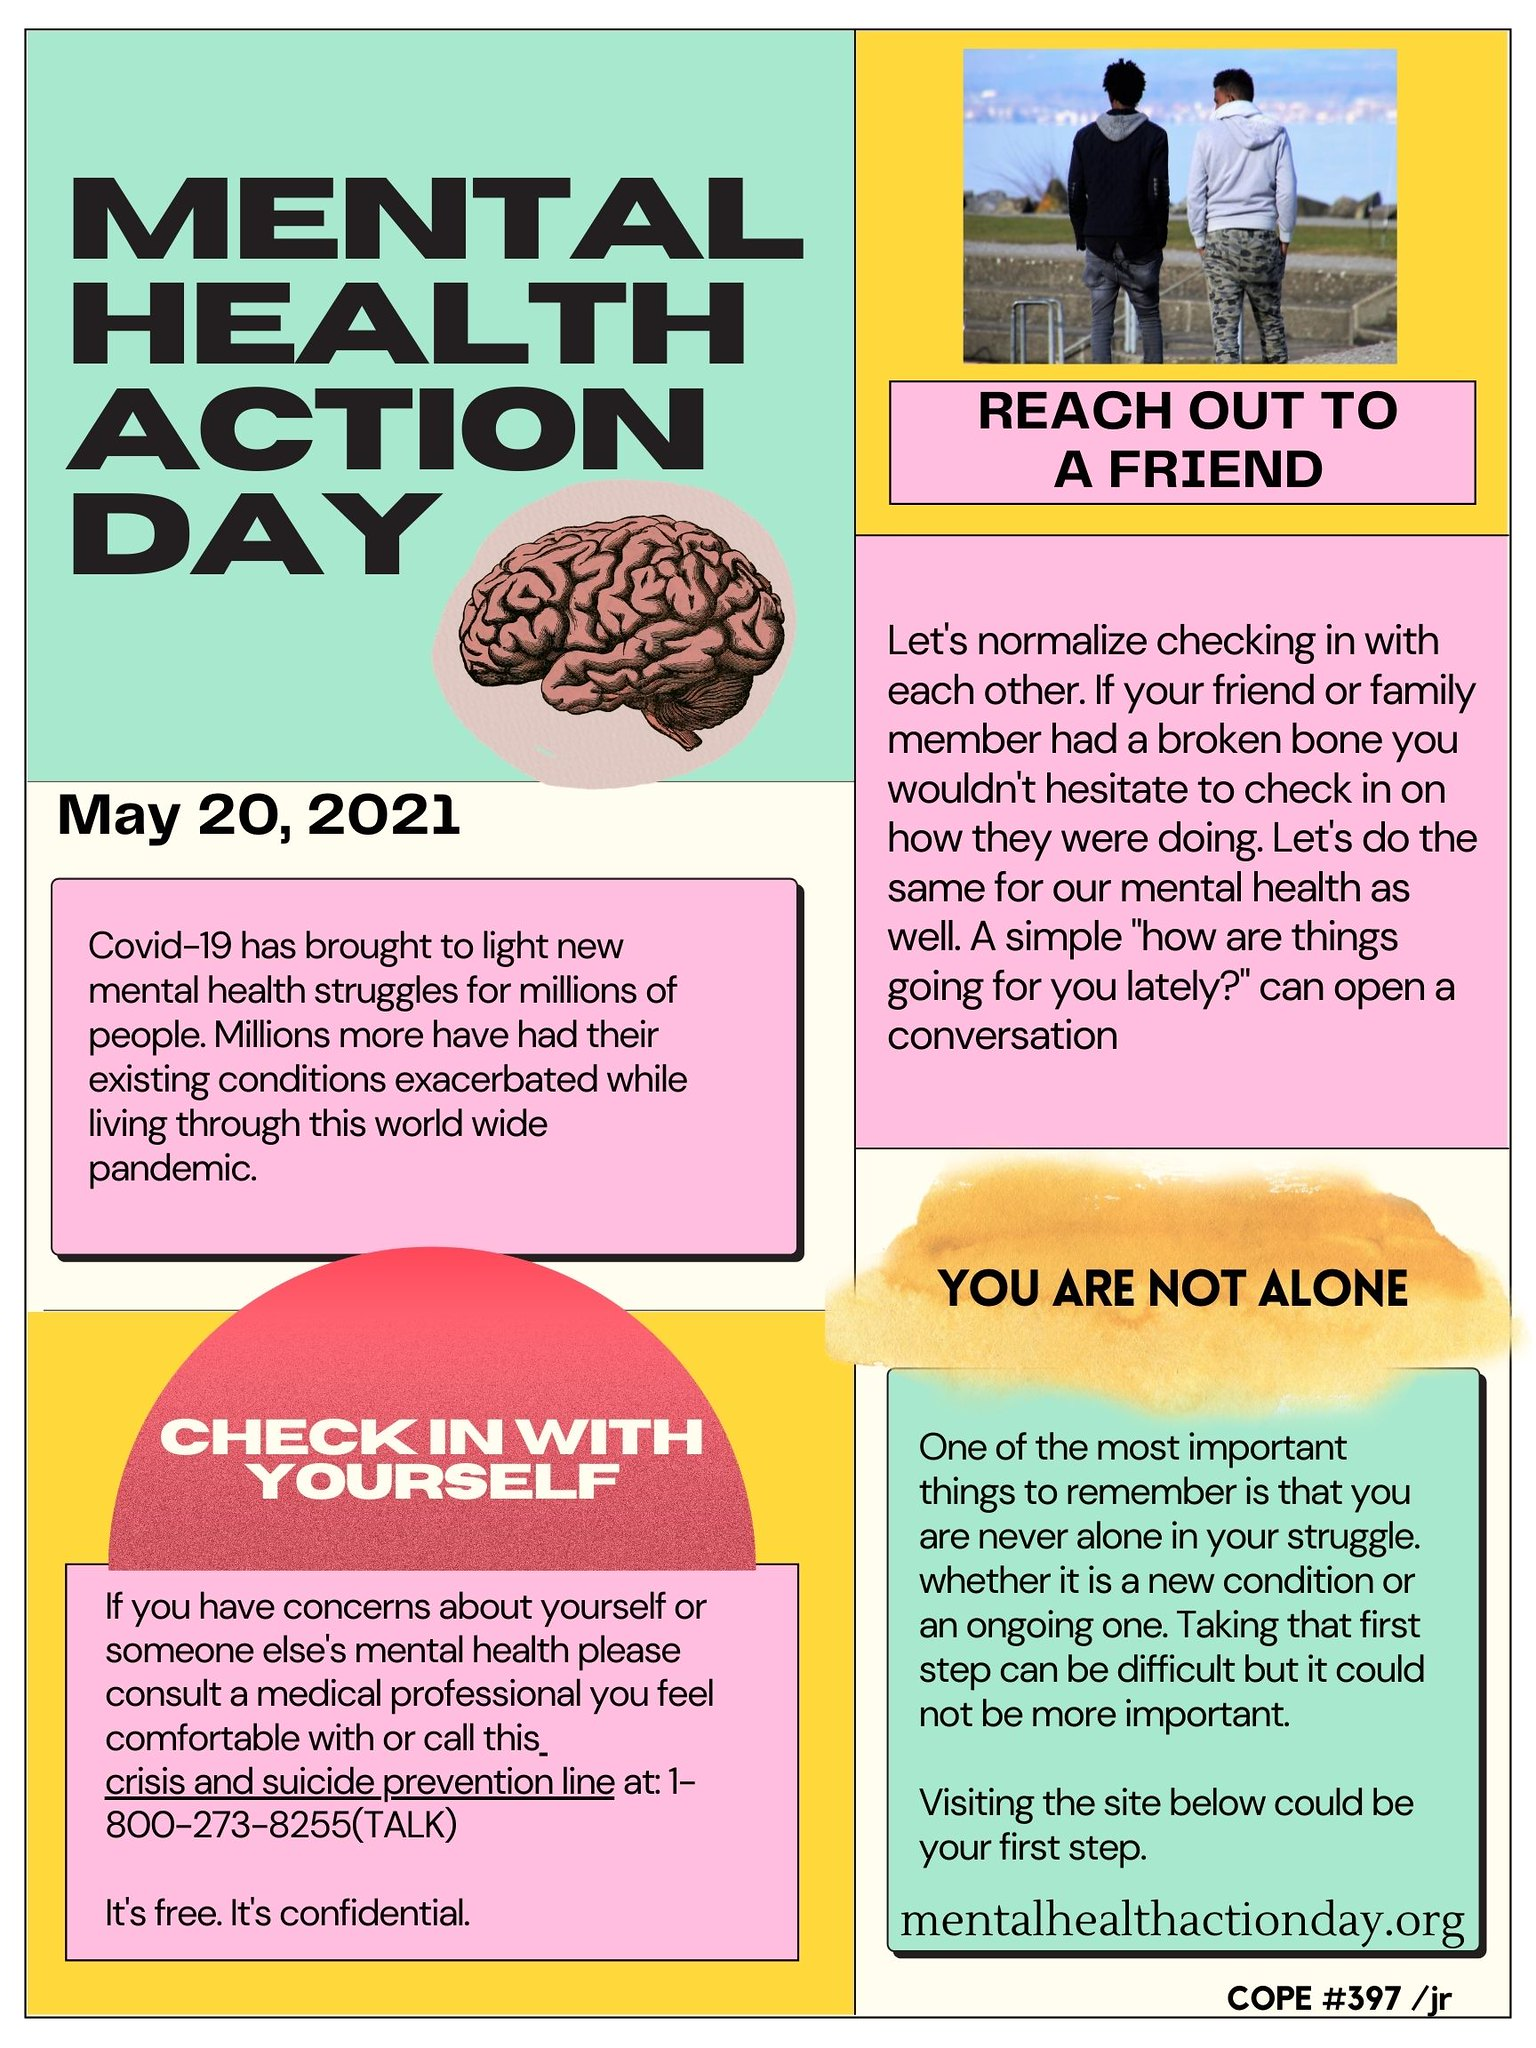 Stop Asian Hate Yellow Green Pink Mental Health and Safety Tips Powerful and Bold Typographic Poster